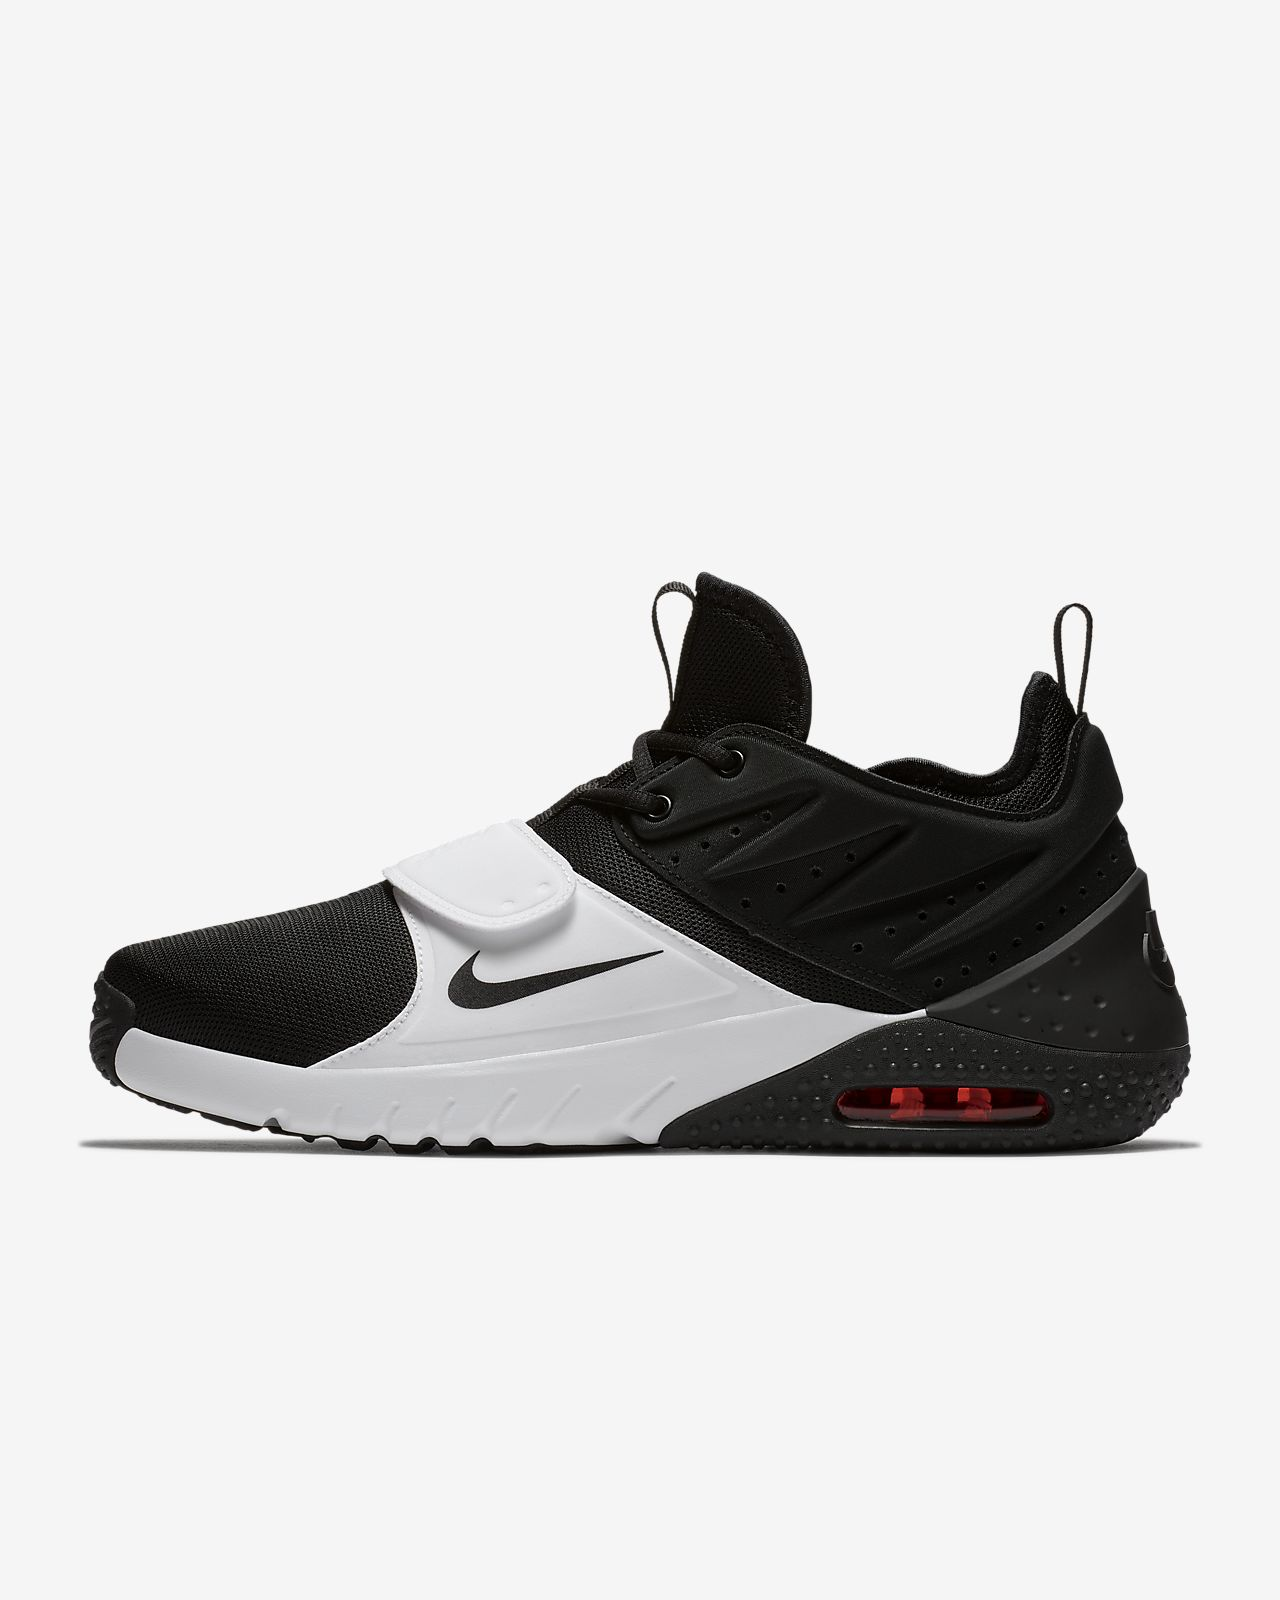 Nike Air Max Trainer 1 Men's Gym/Training/Workout Shoe